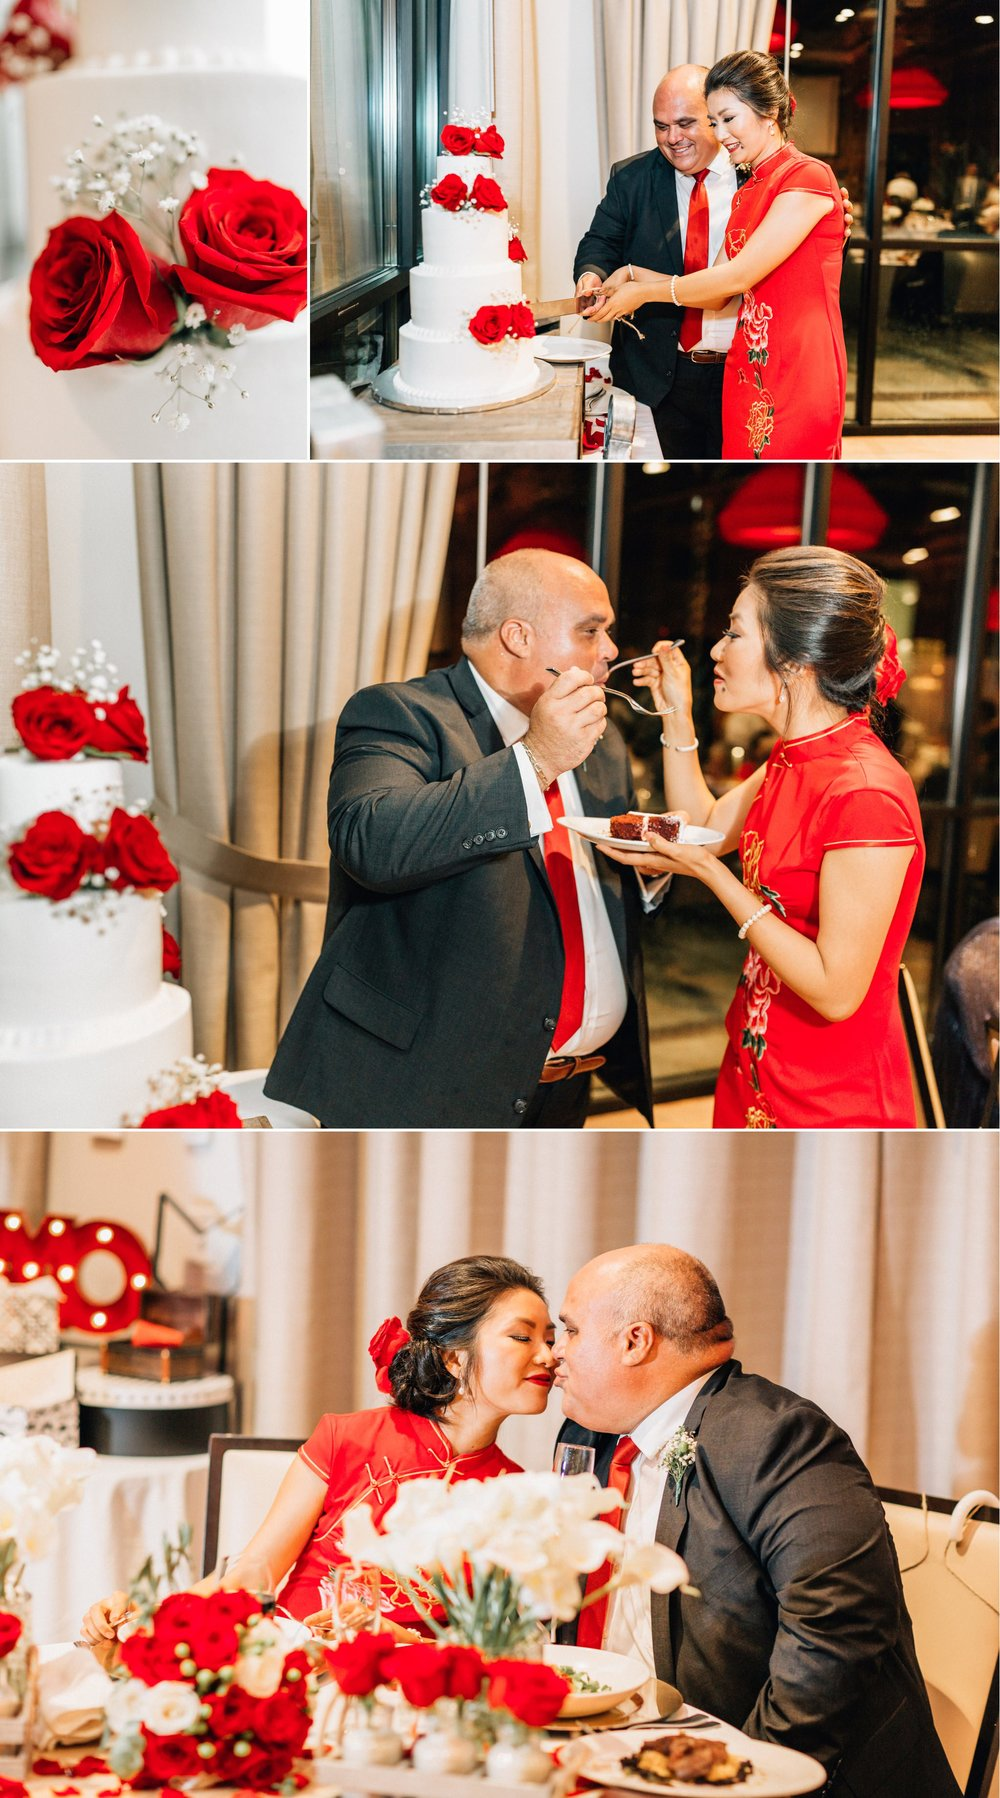 Lakehouse Lake Nona Wedding- Modern Colorful Red Multicultural- Susan + Manolo 45.jpg